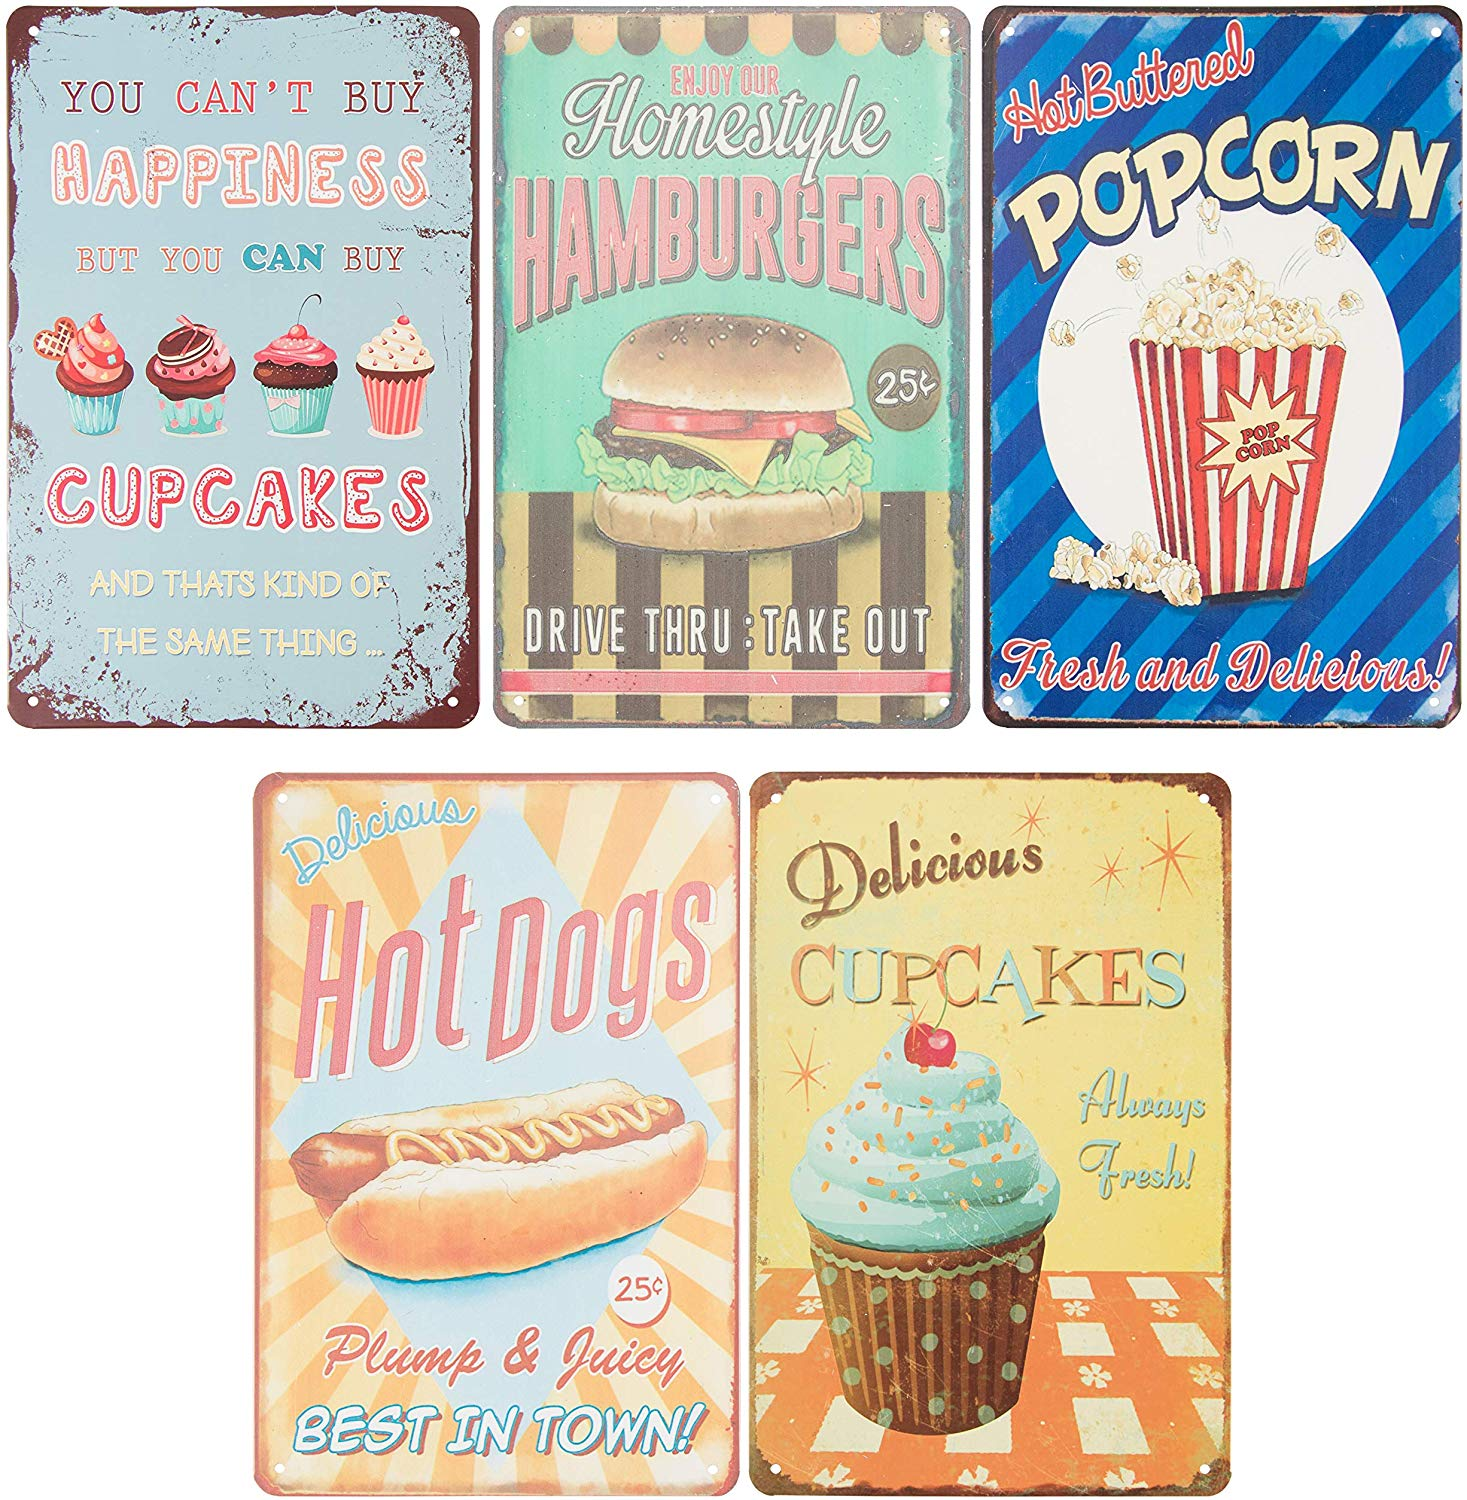 Us 21 06 Vintage Tin Signs Retro Style Metal Signs As Wall Decor Decorative Diner Coffee Bar Kitchen Sign Food And Snacks Theme On Aliexpress